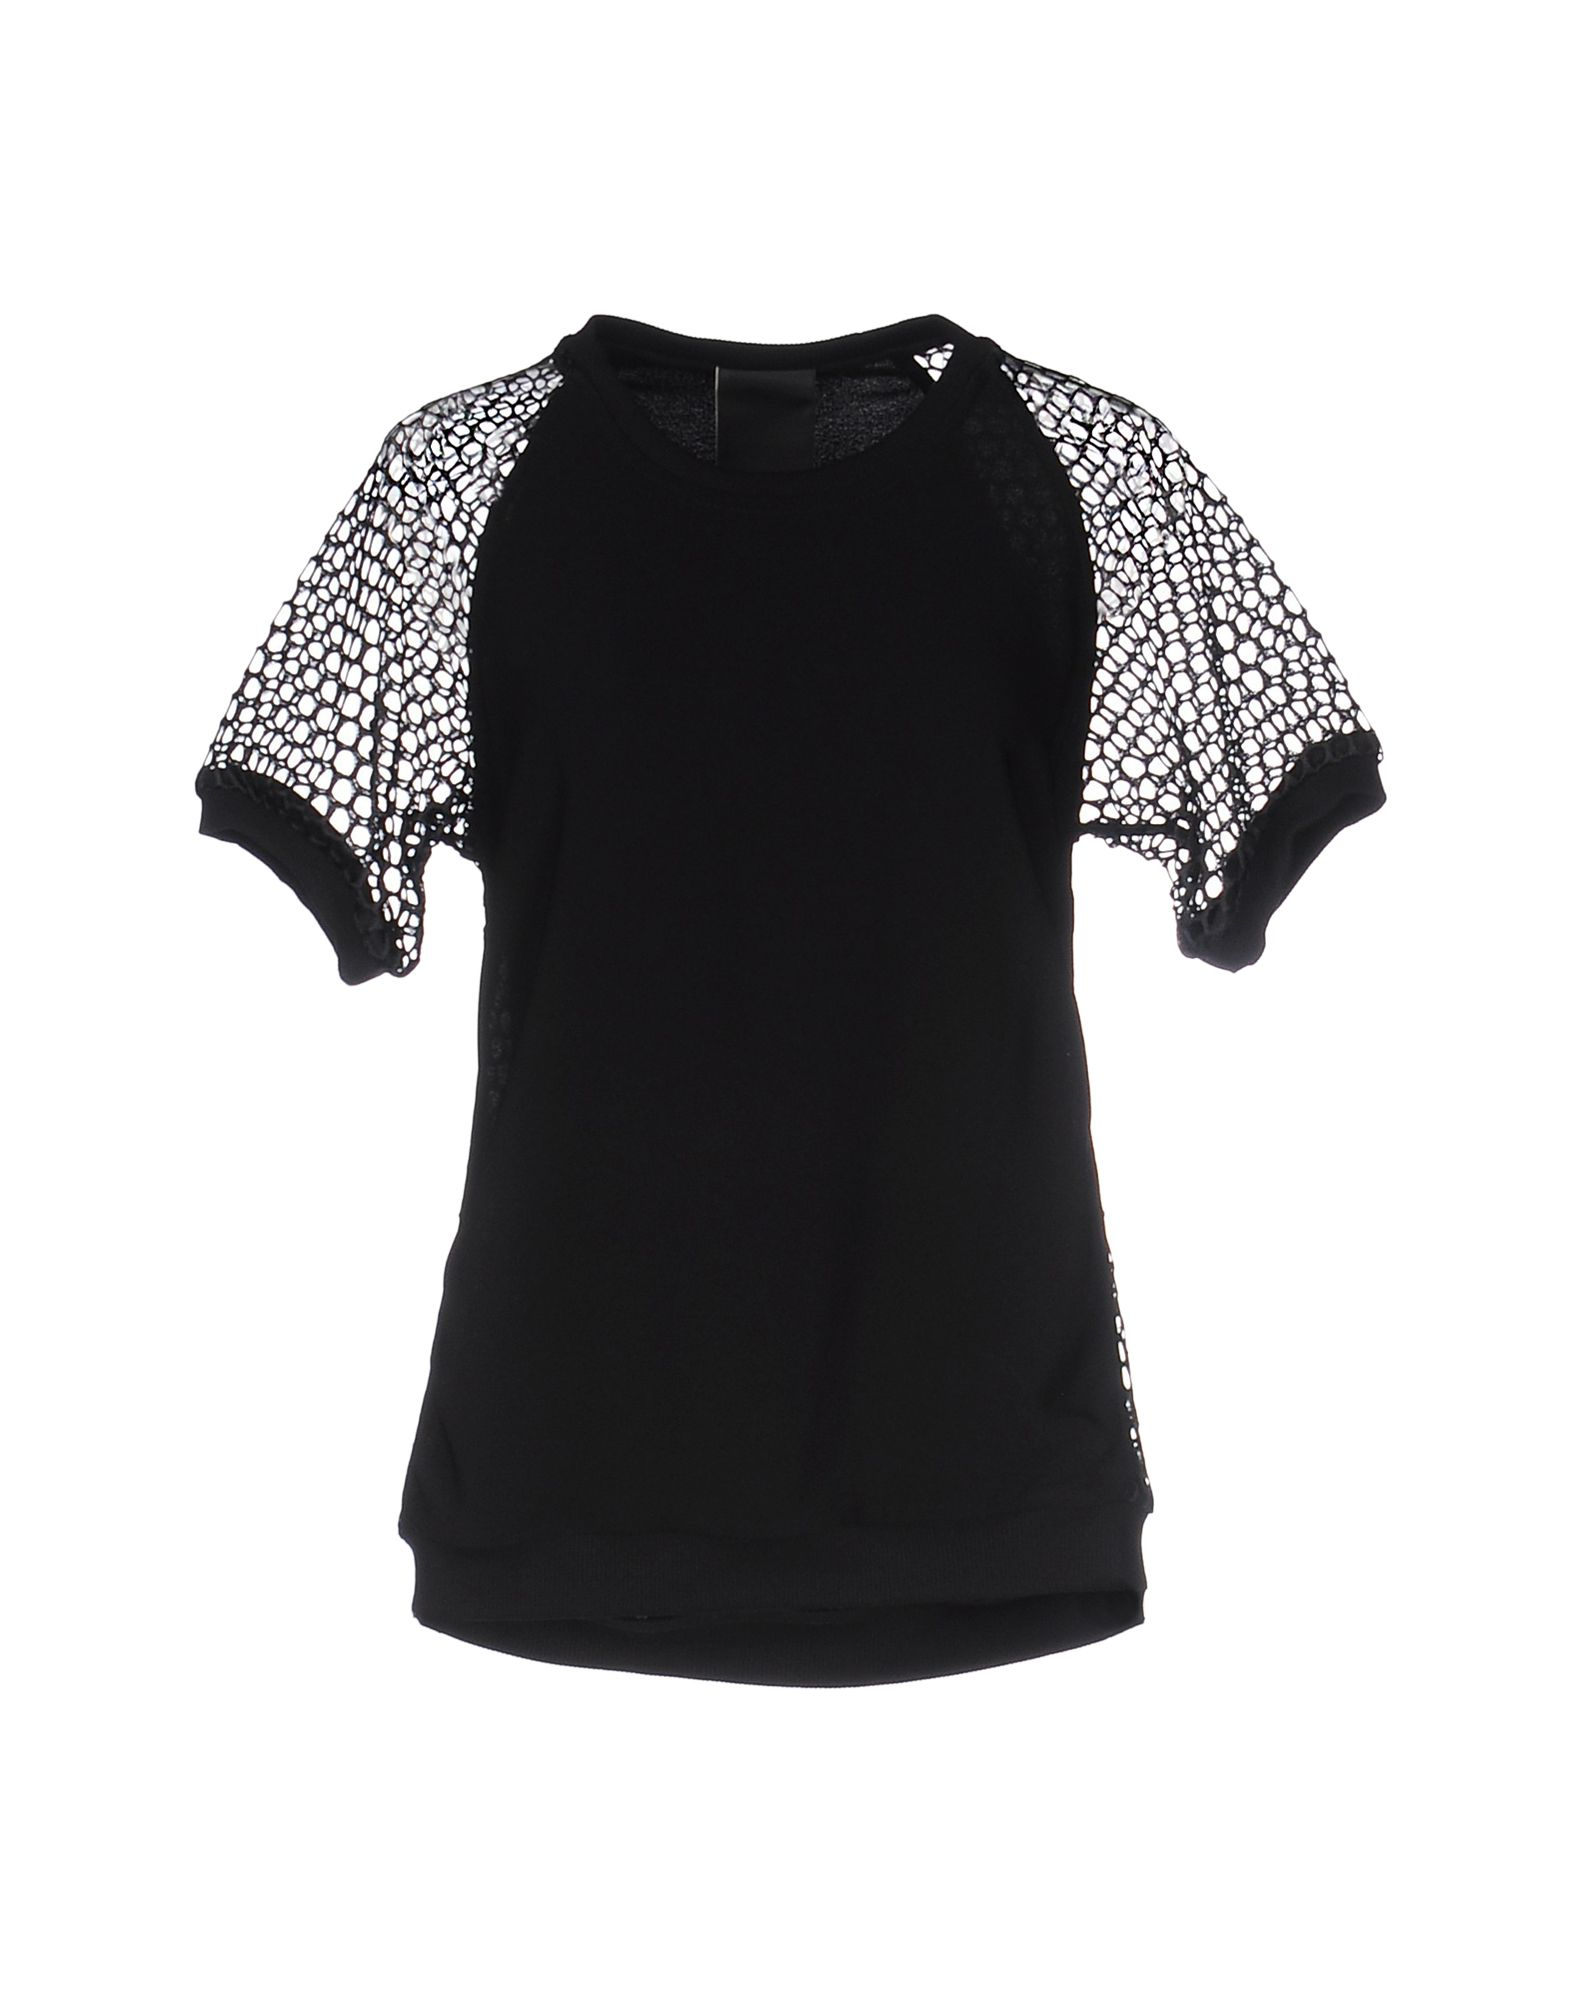 LUXURY FASHION Blouse in Black